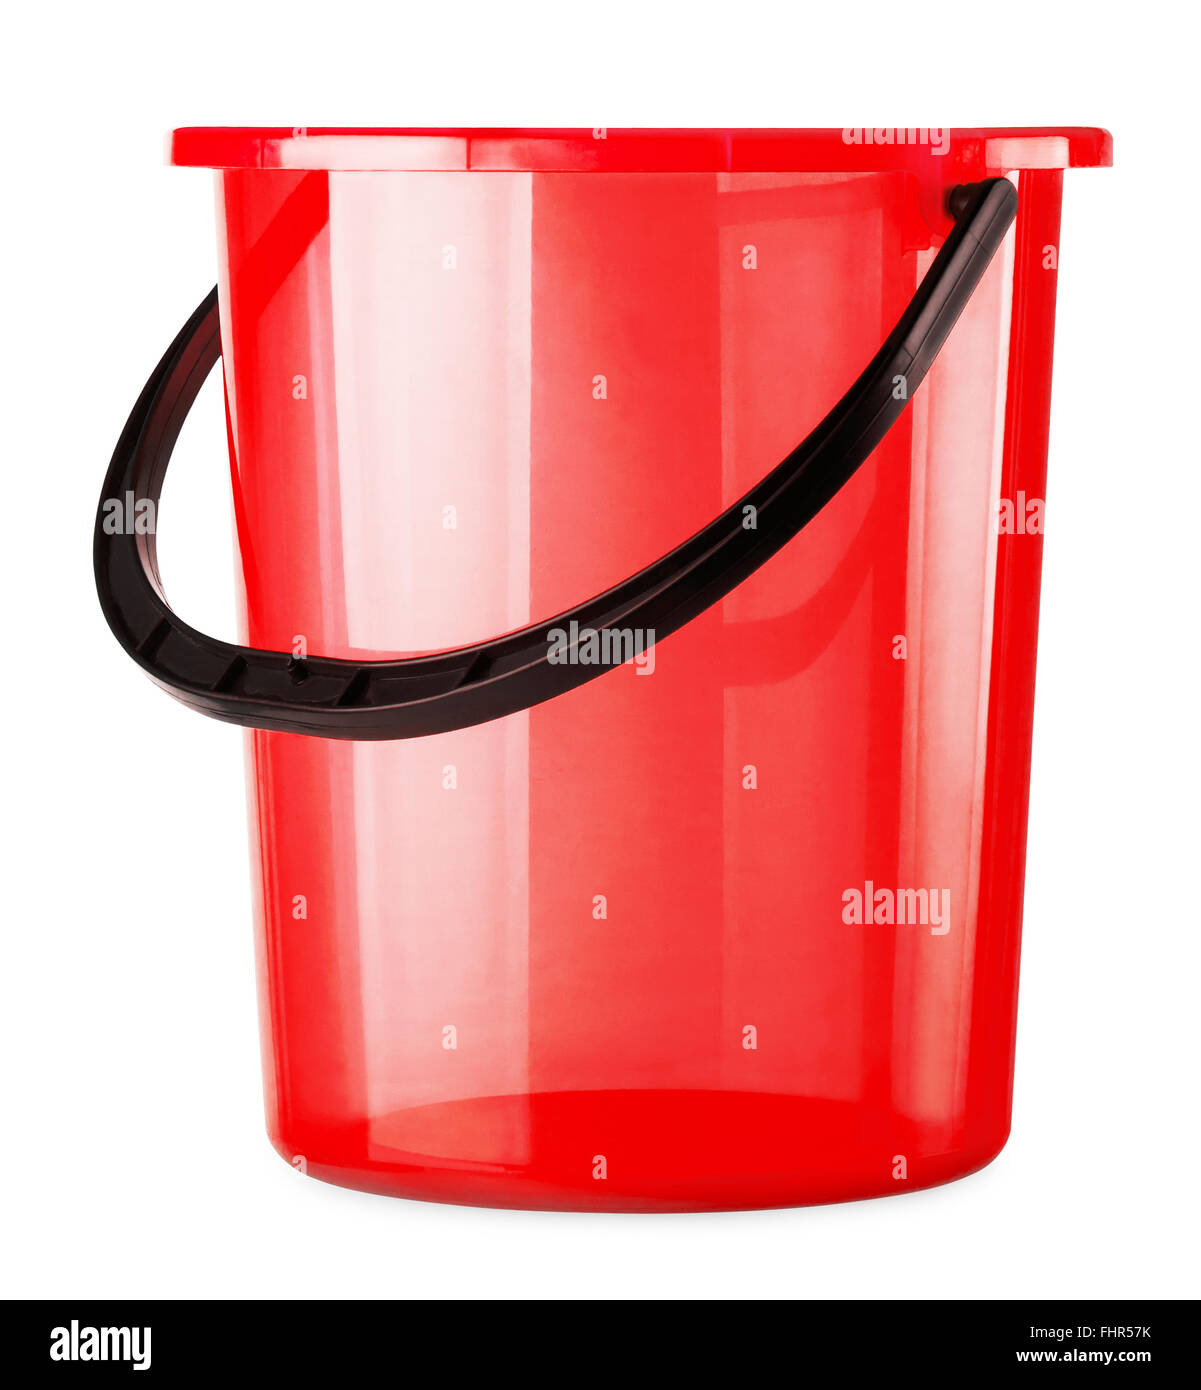 Empty red bucket isolated on a white background - Stock Image